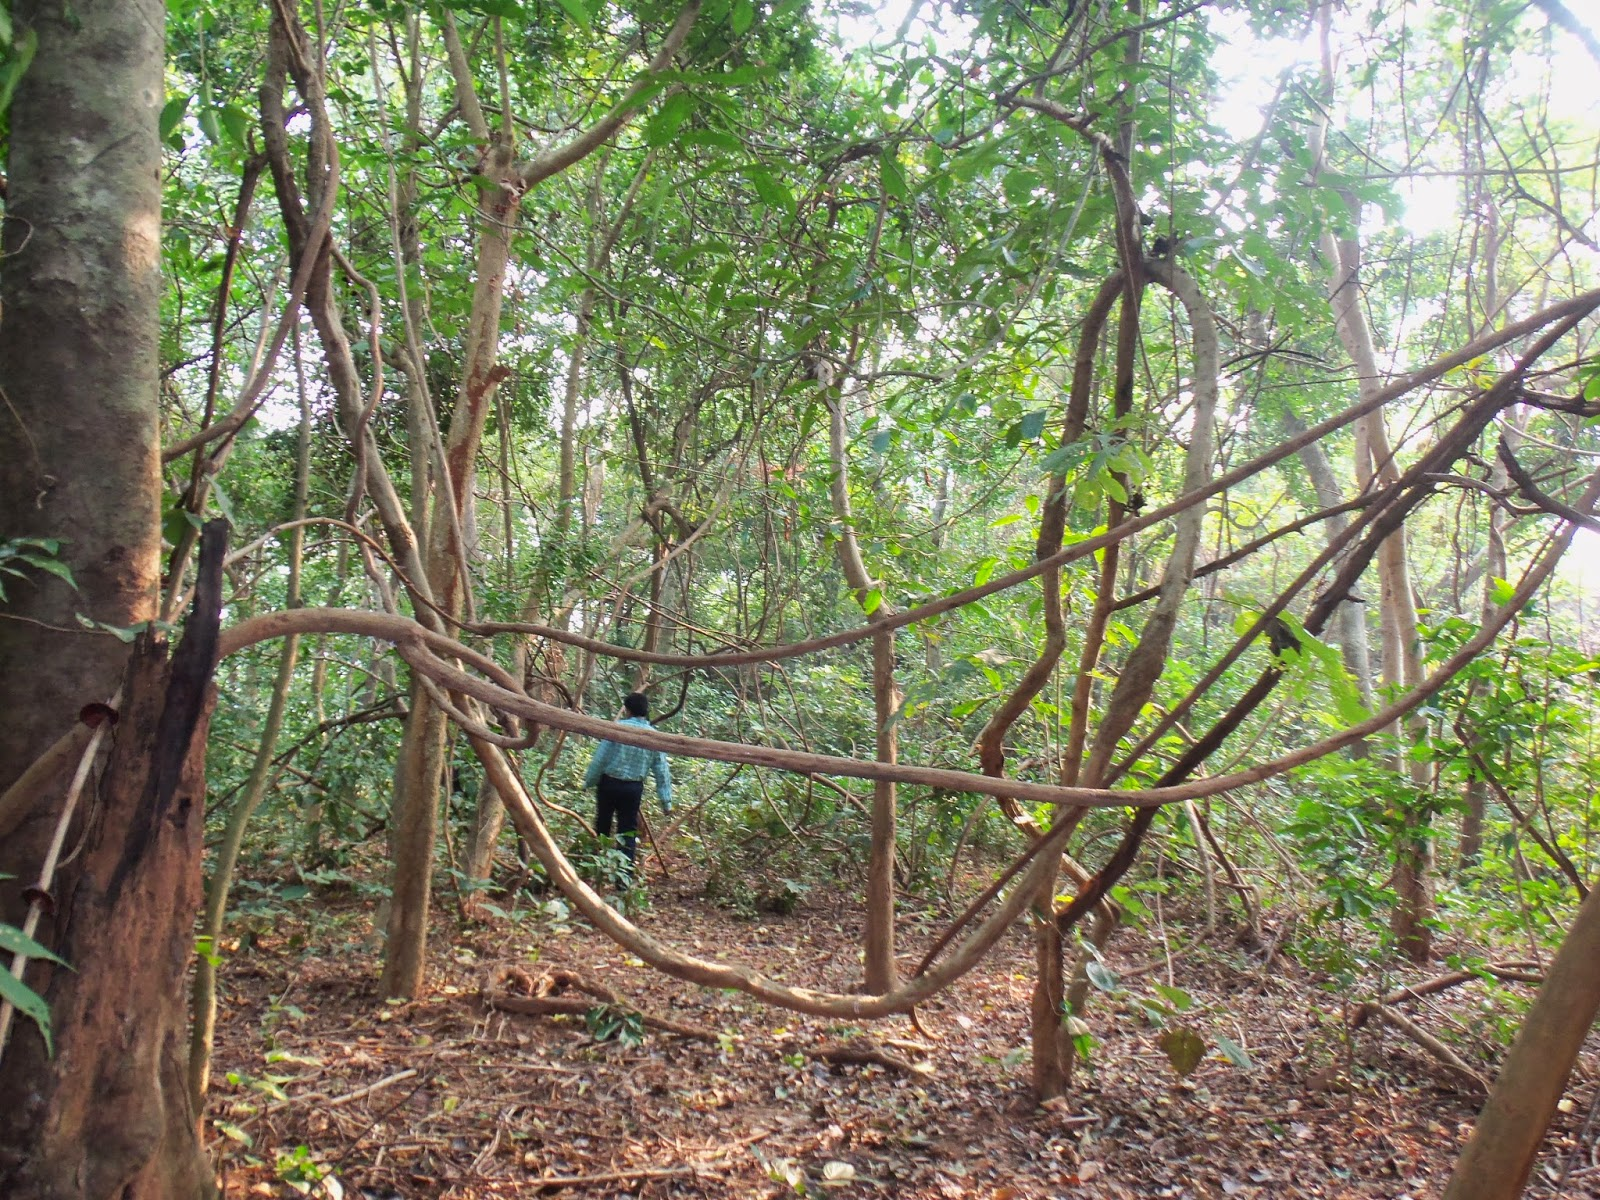 The jungle way prevails with the serpentine plants